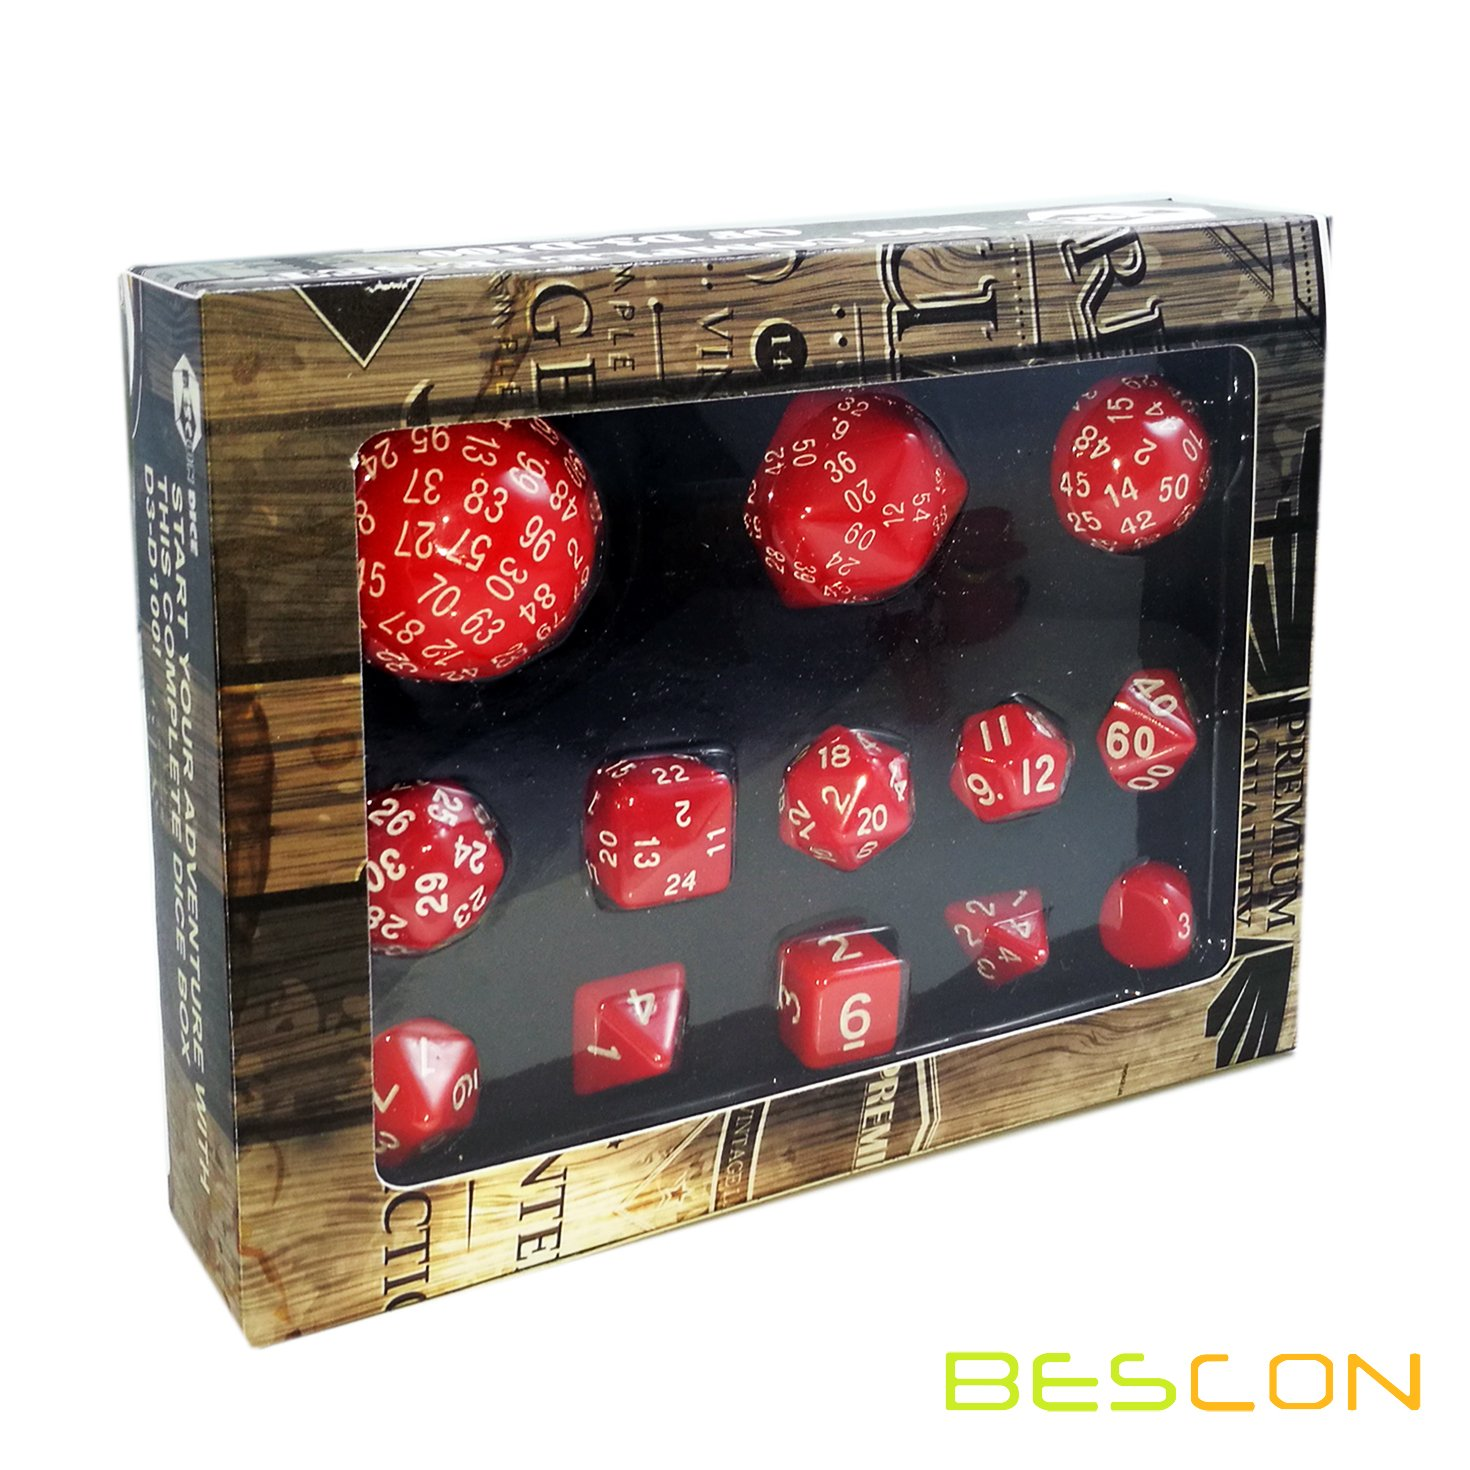 BESCON DICE Bescon Complete Polyhedral Dice Set 13pcs D3-D100, 100 Sides Dice Set Opaque Red